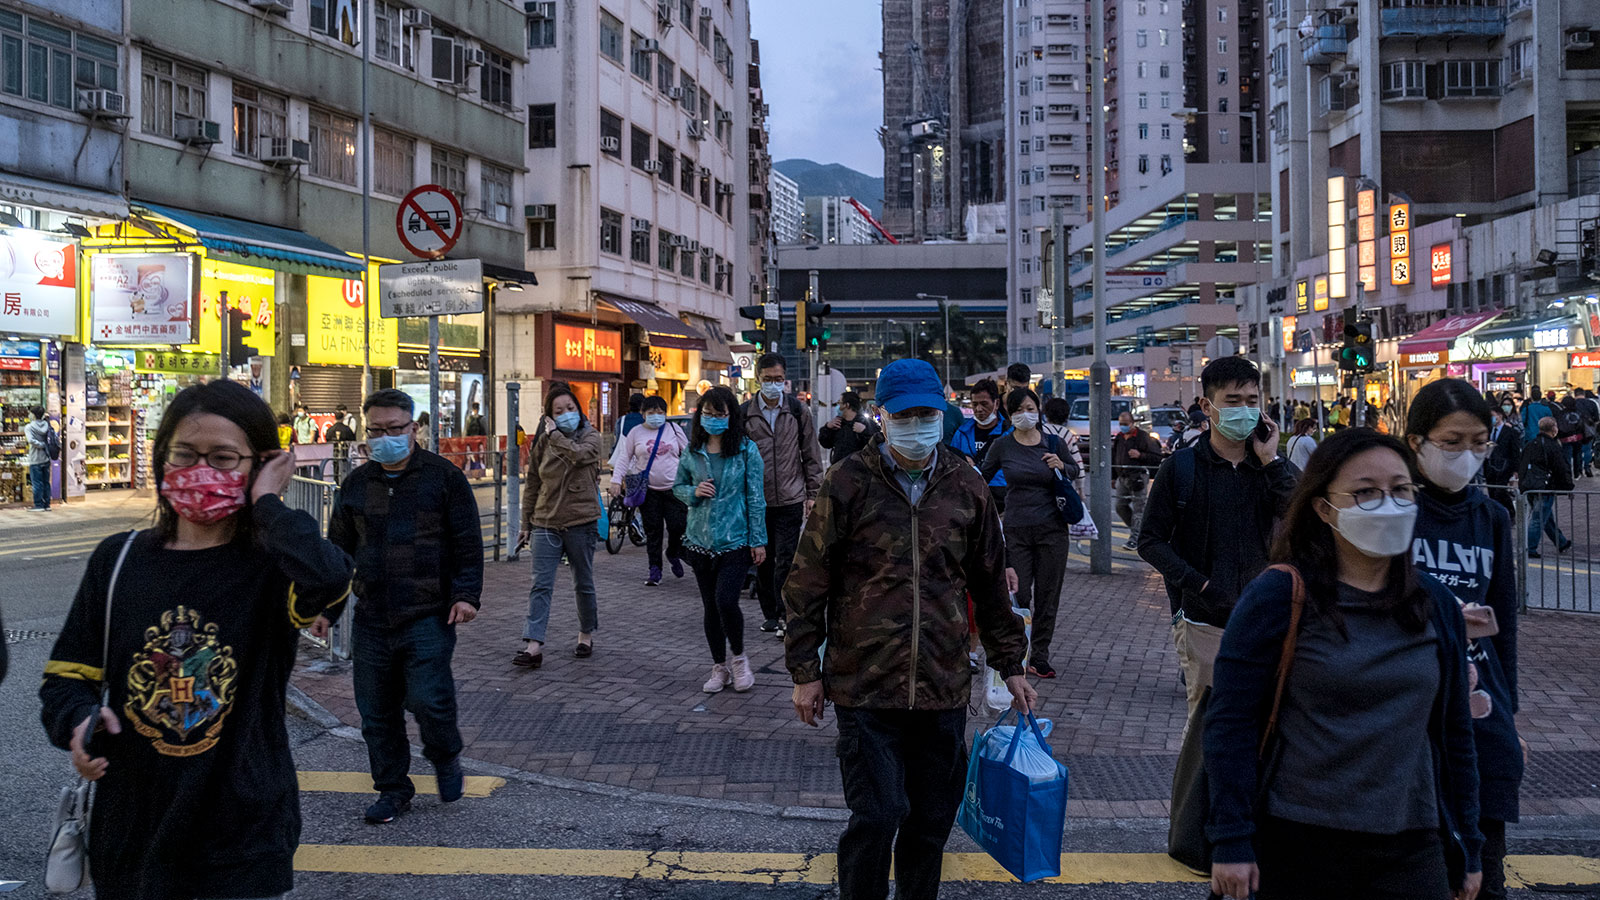 Pedestrians are seen wearing masks as they cross the street in Hong Kong on February 27.